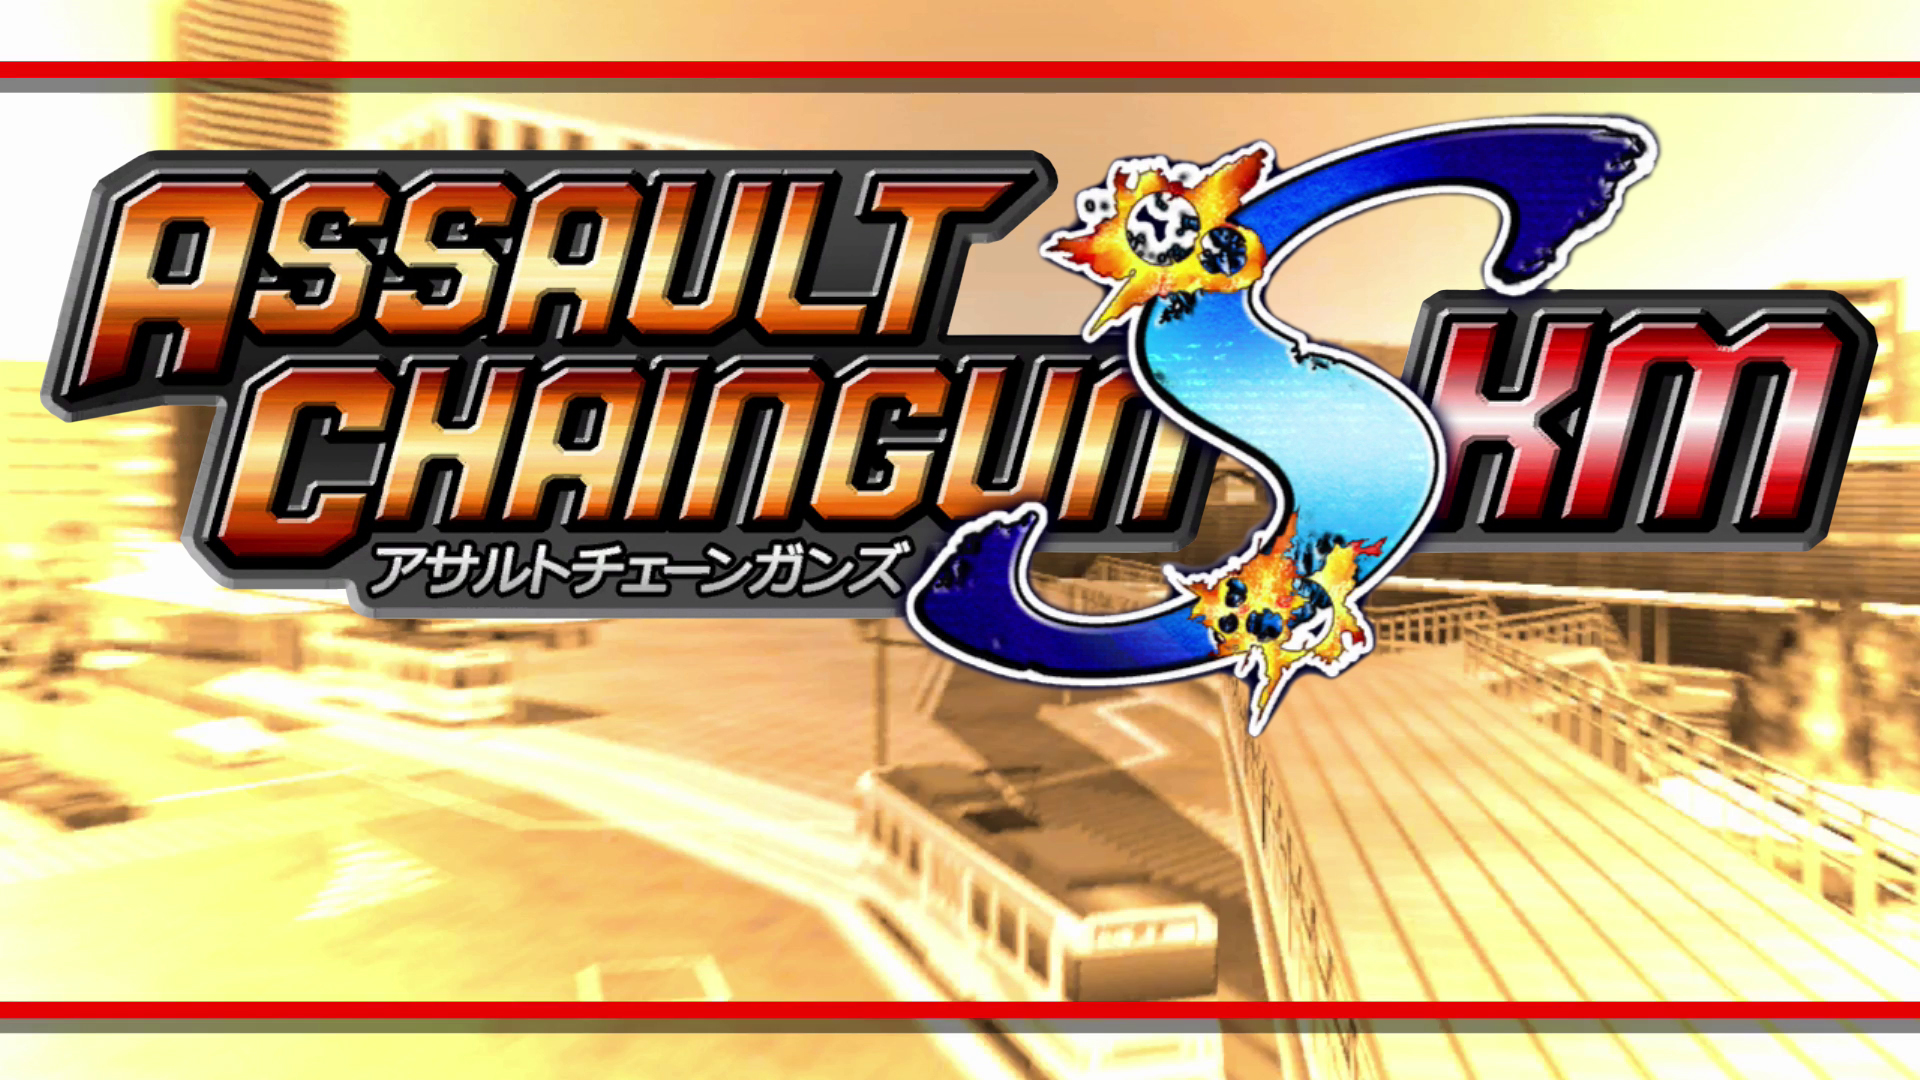 """The retro shooting arcade-style """"Assault ChaingunS KM"""" is available now on Nintendo Switch!"""